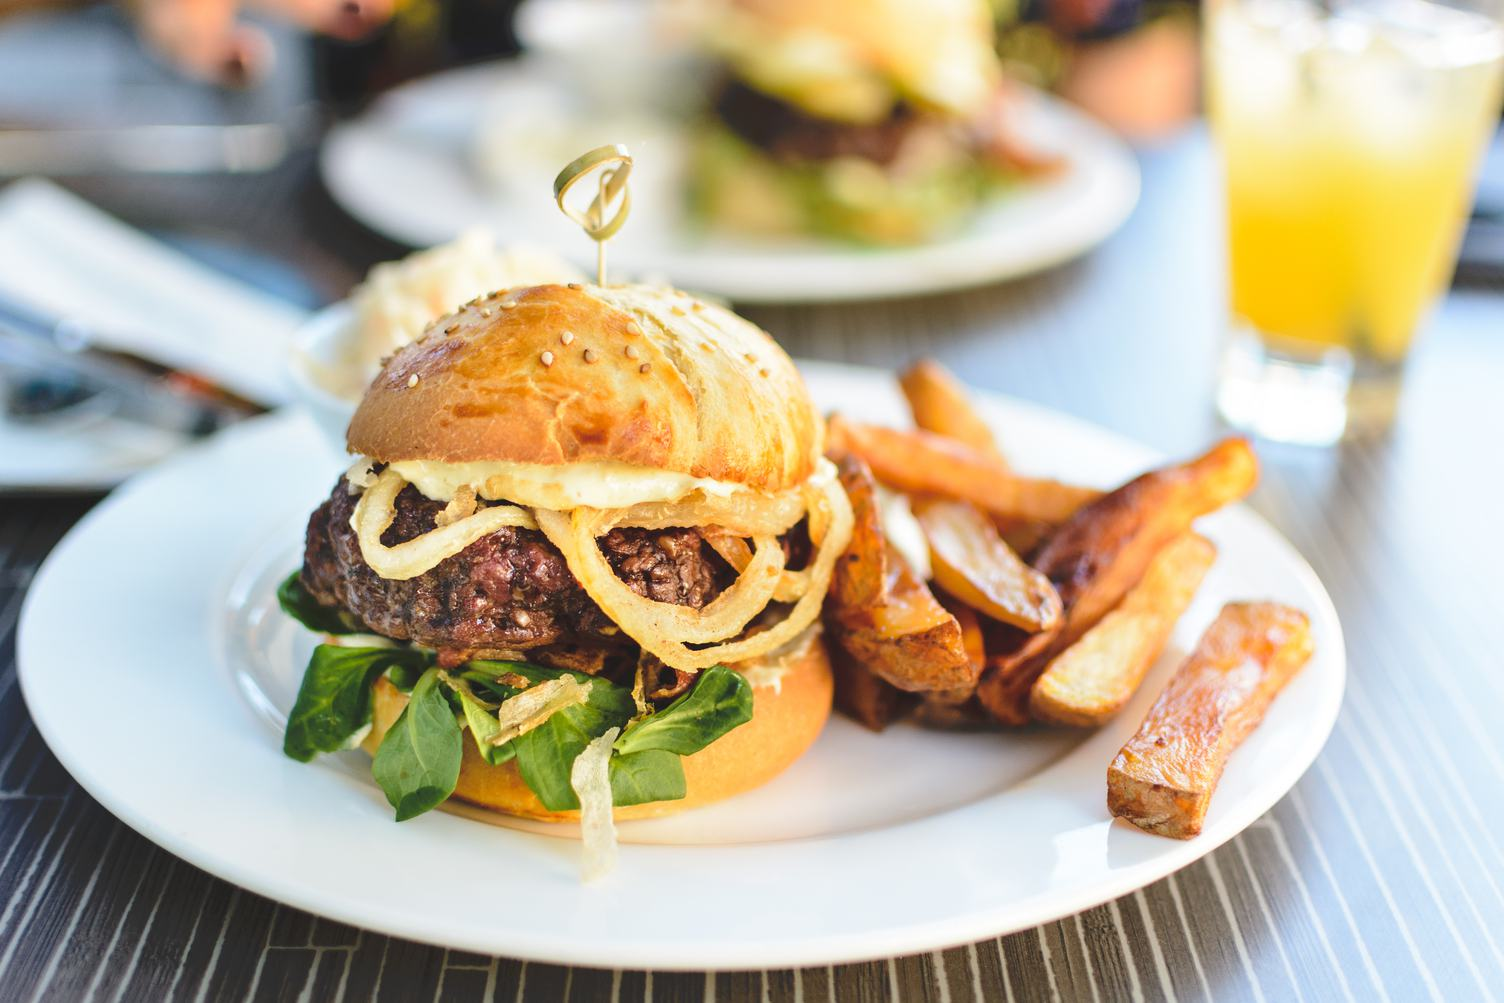 Little Burger with French Fries